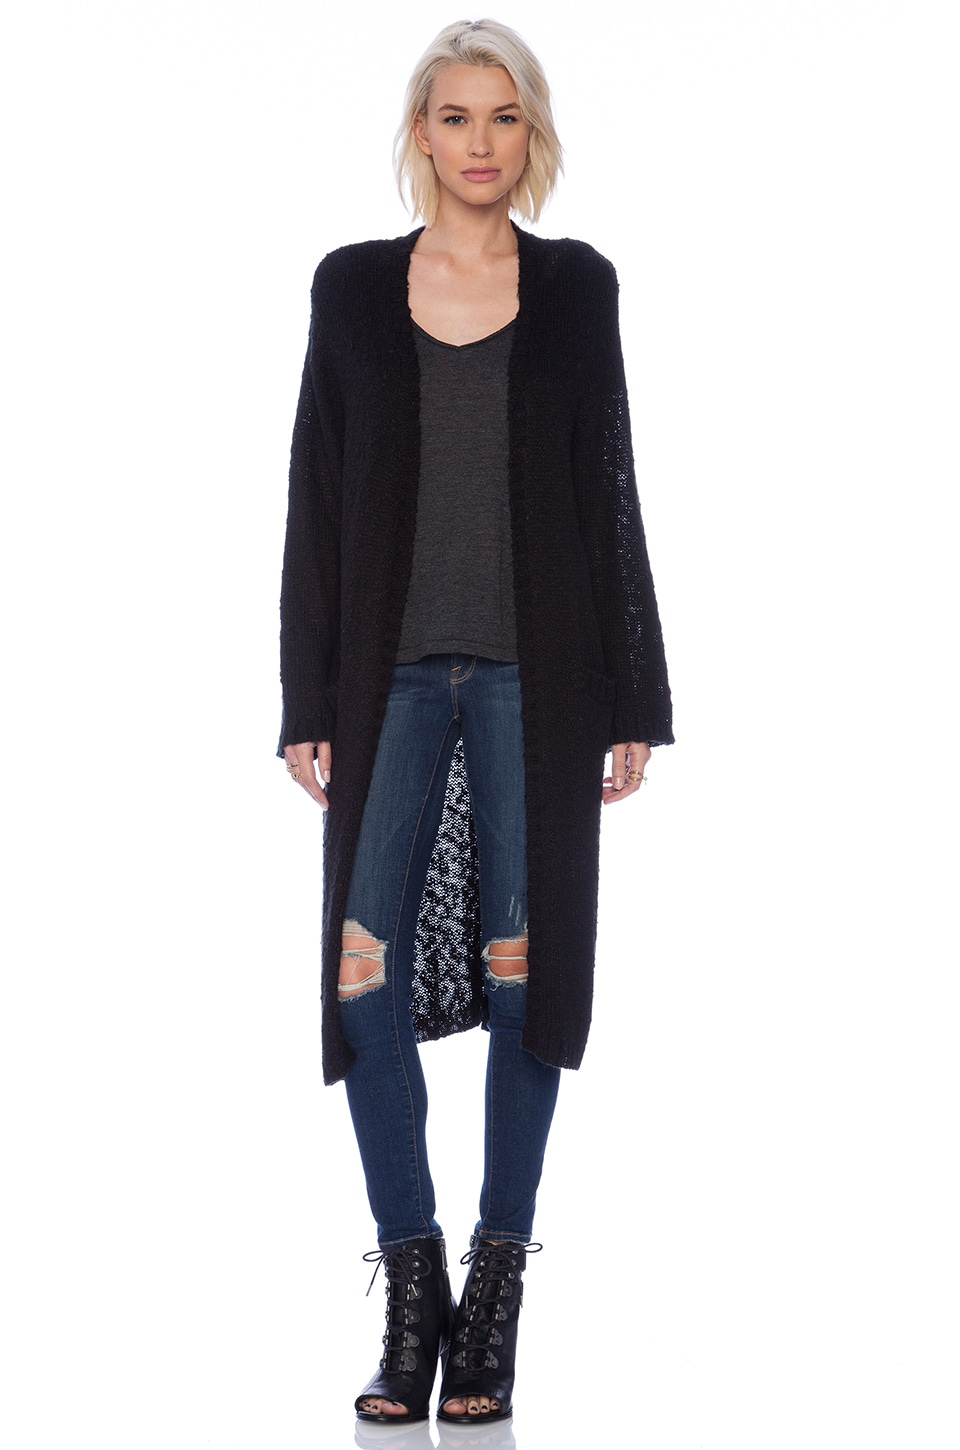 Cheap Monday Memoir Cardigan in Black | REVOLVE